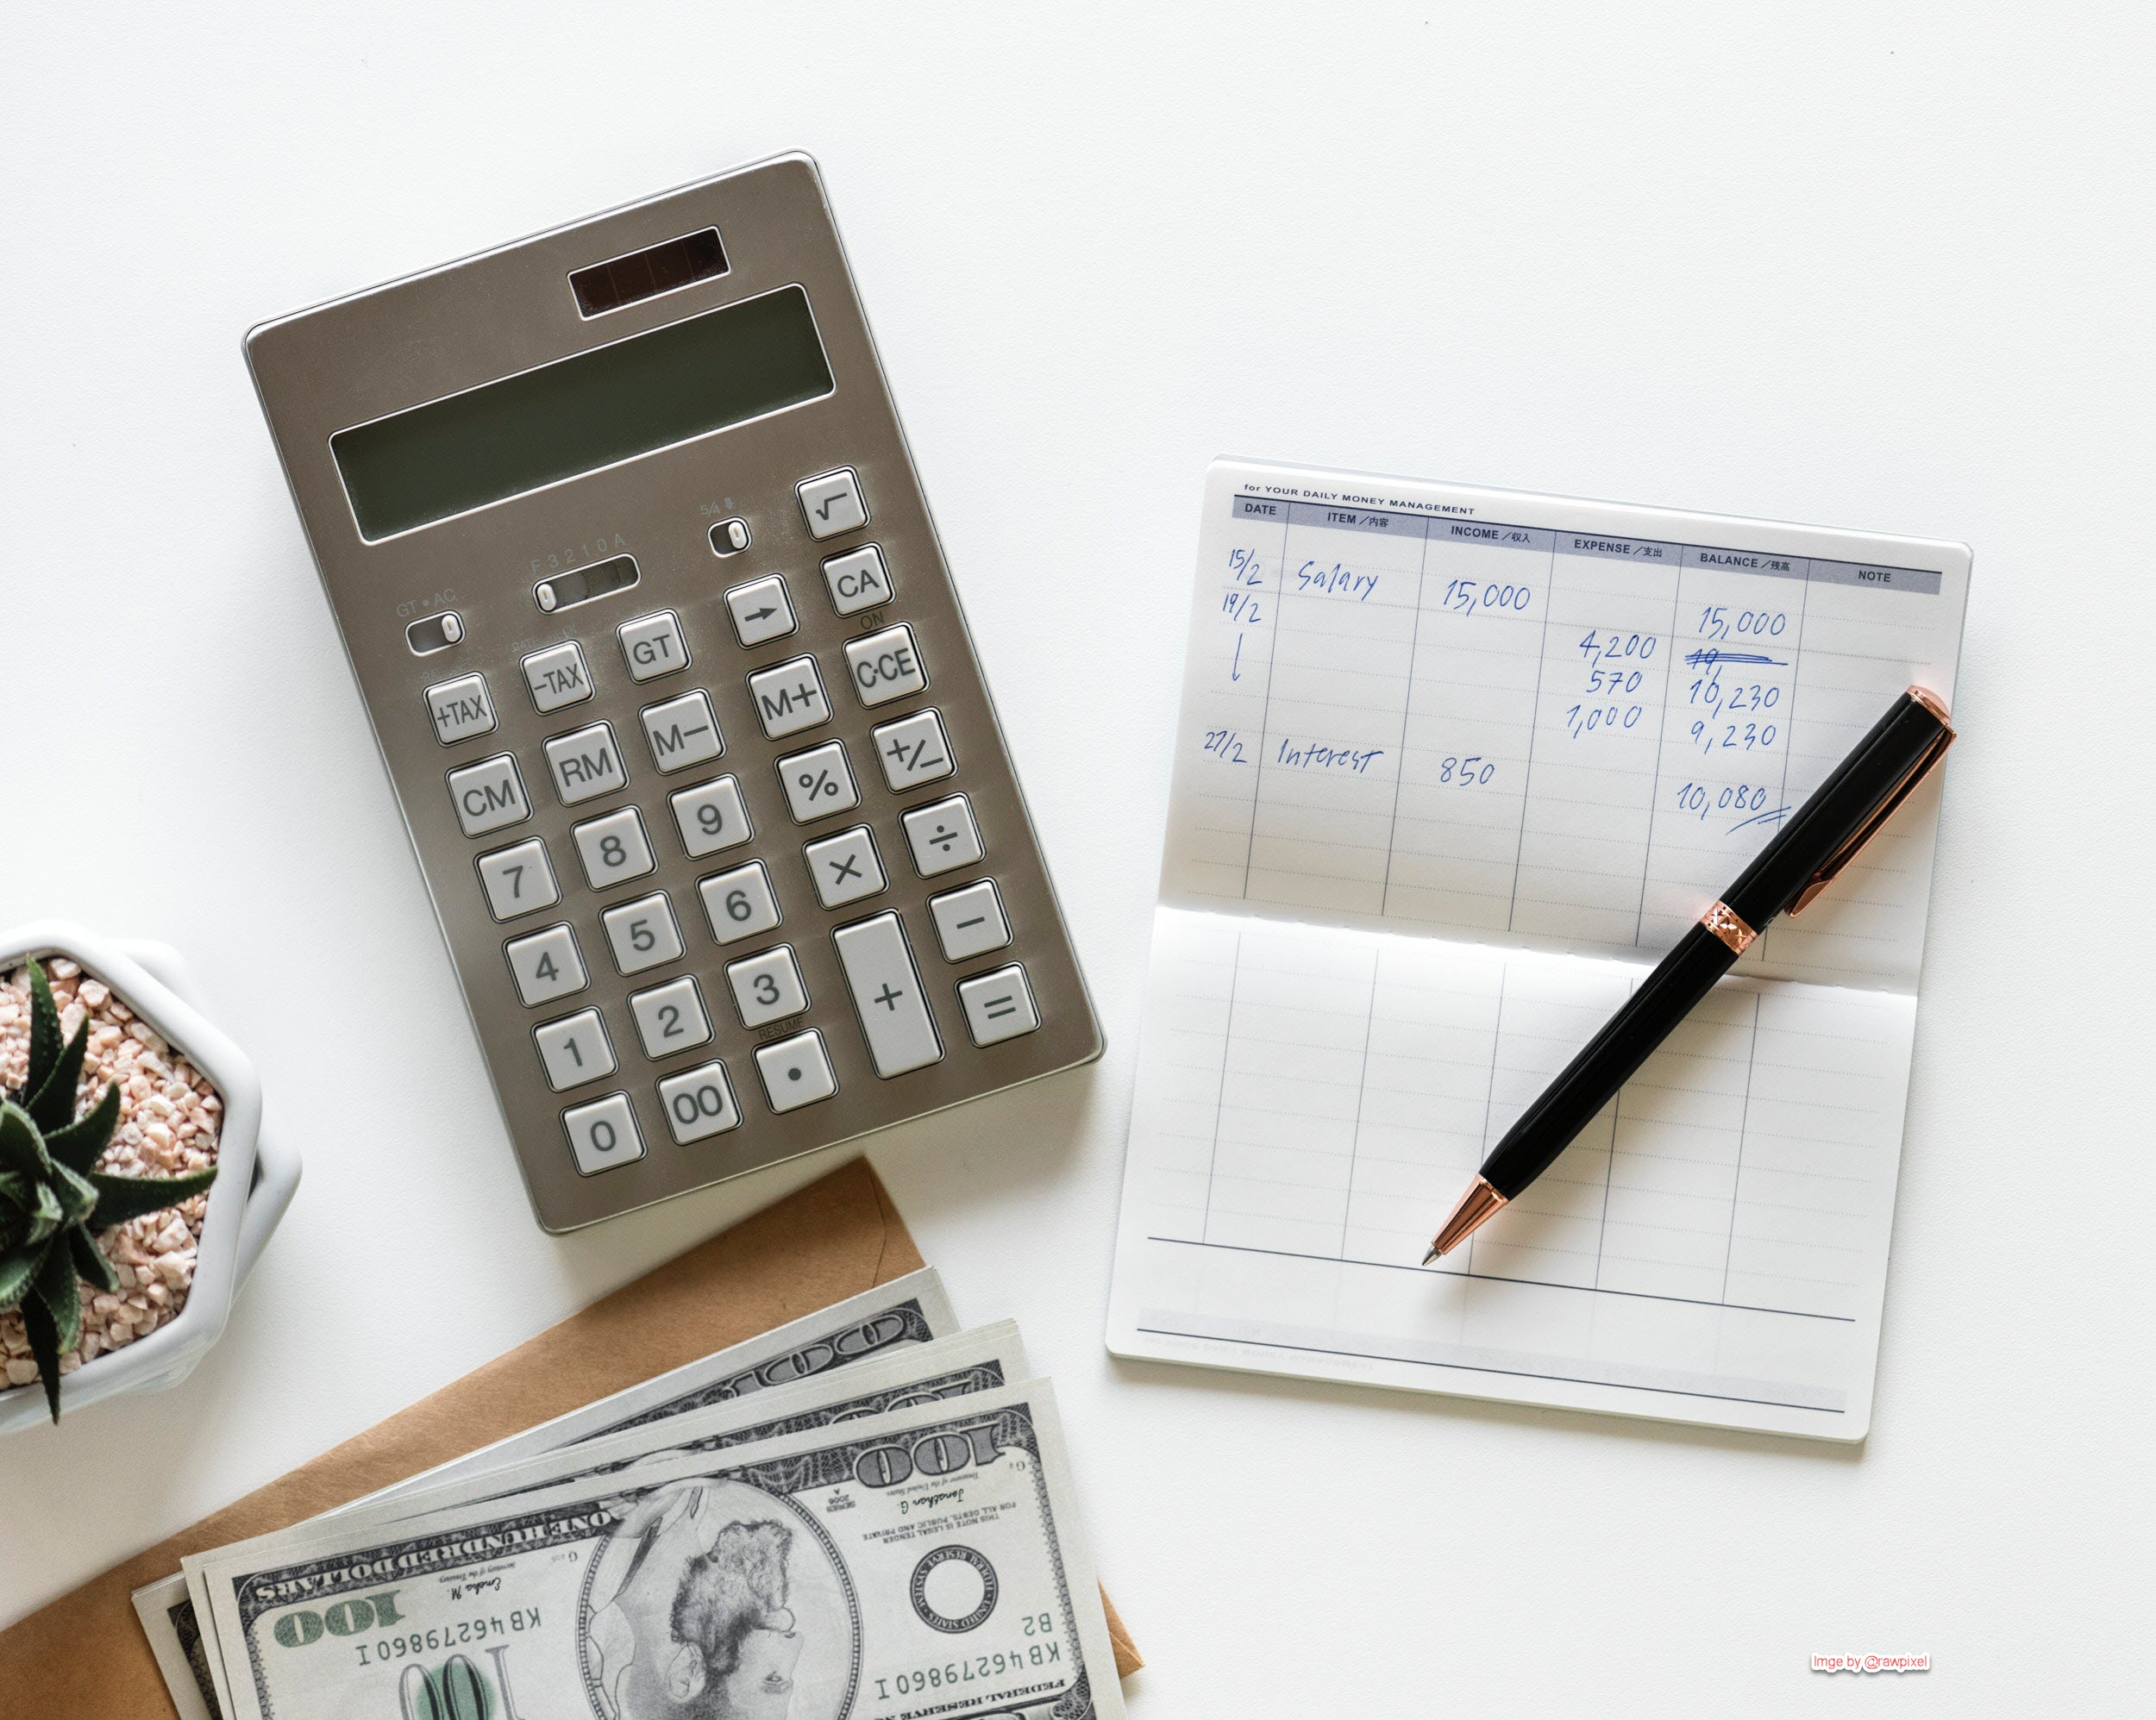 Business Value calculation